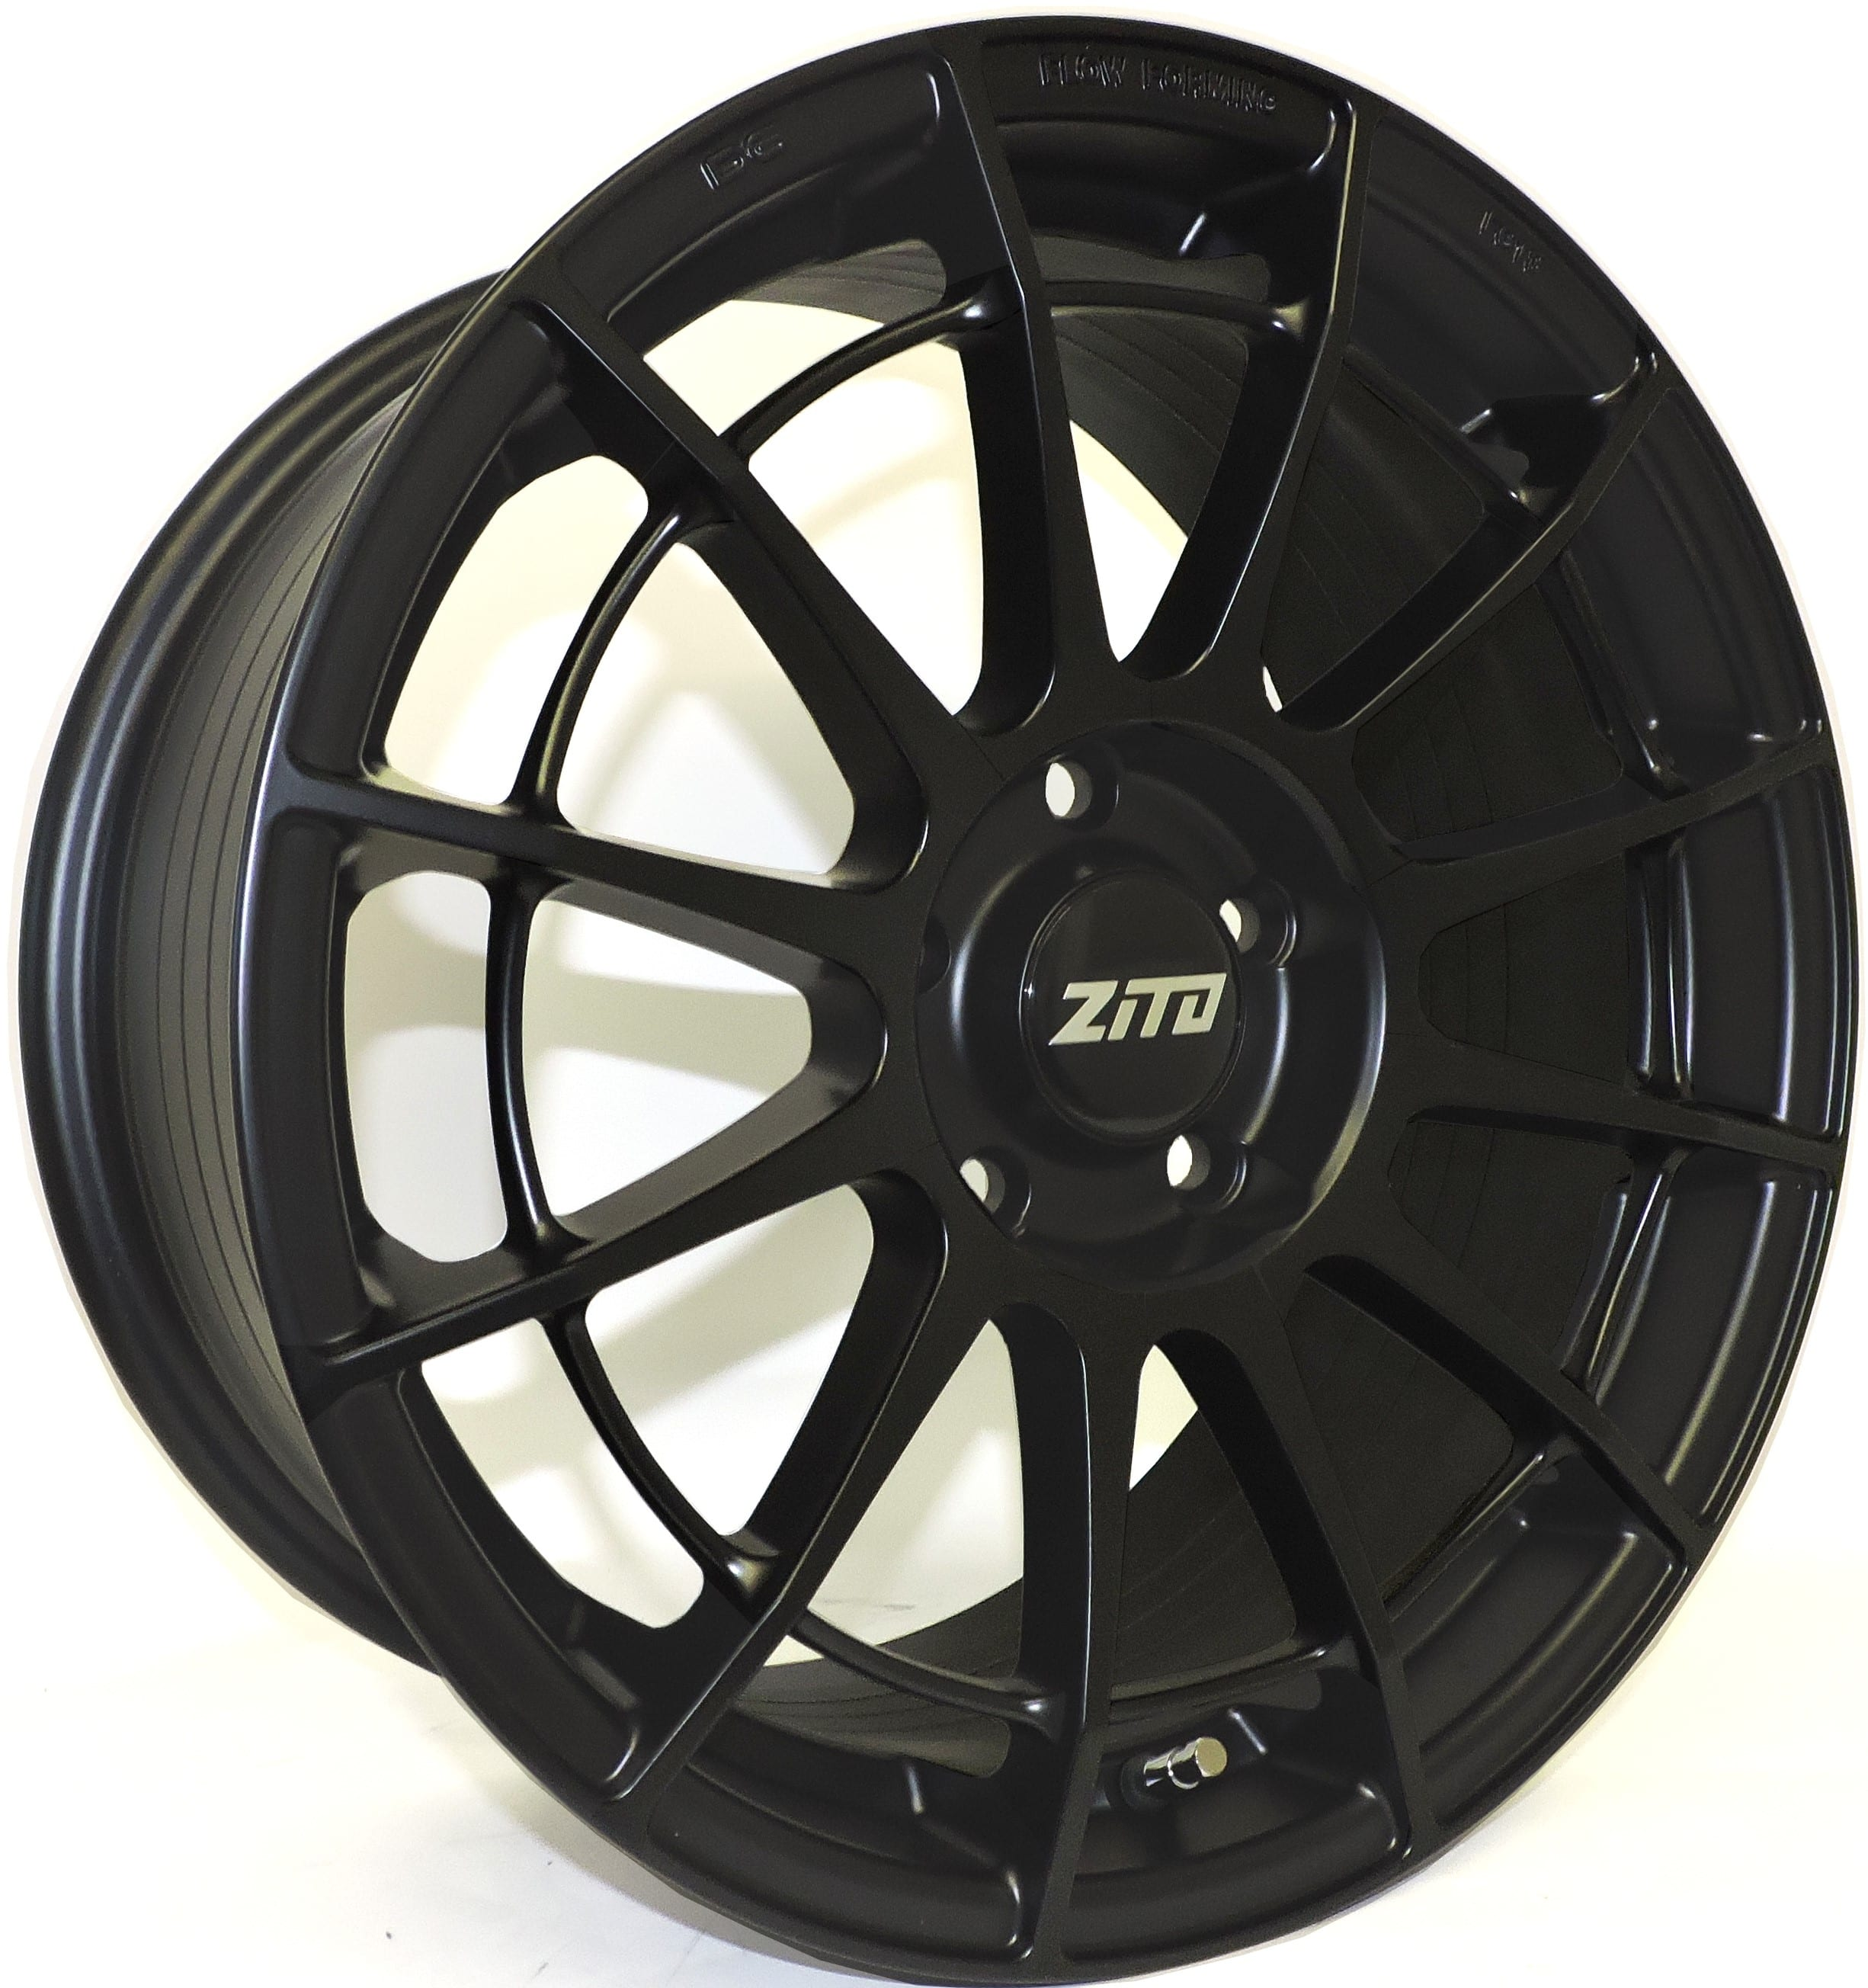 Zito - DG13 (Satin Black)